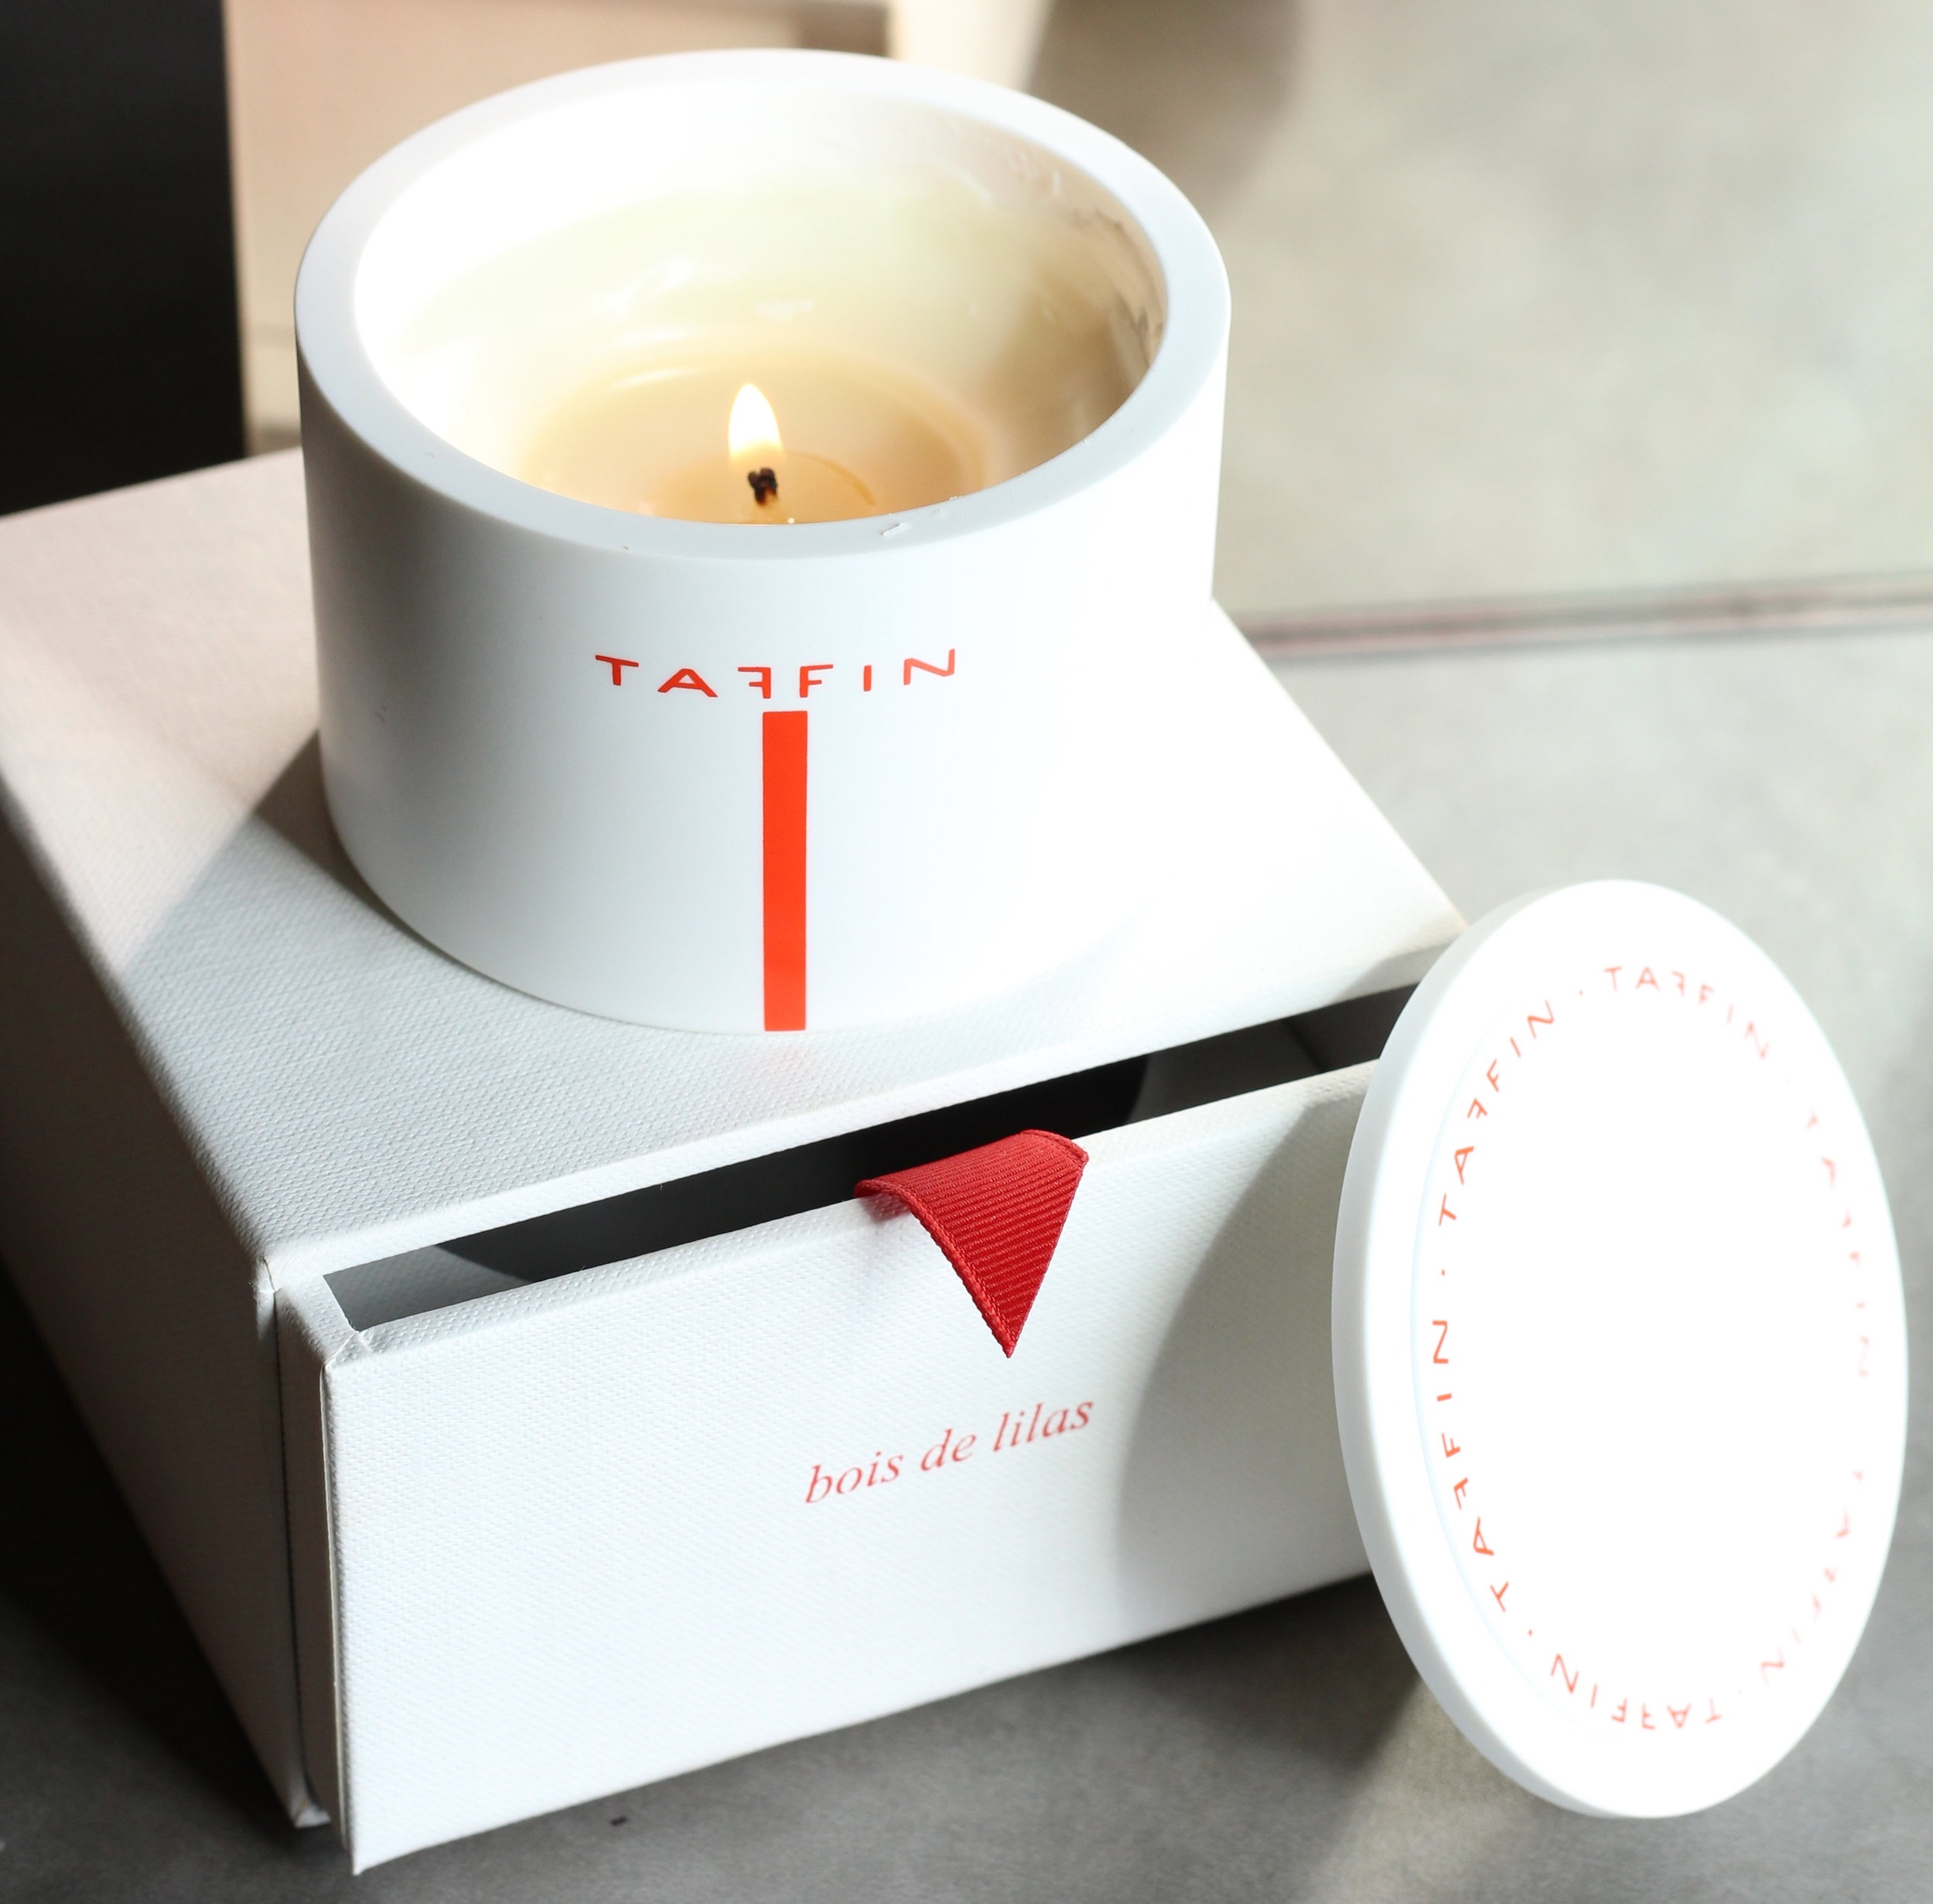 "TAFFIN Candles   TAFFIN candles represent meticulous craftsmanship and care. The concentrated combinations of essential oils and the Bakelite containers make for richly fragrant and visually stunning candles to enjoy and give. By James de Givenchy, Made in France.   ""Just as I strive to perfect each piece of jewelry that I create, I want my candles to represent the same meticulous craftsmanship and care.""   - James de Givenchy."